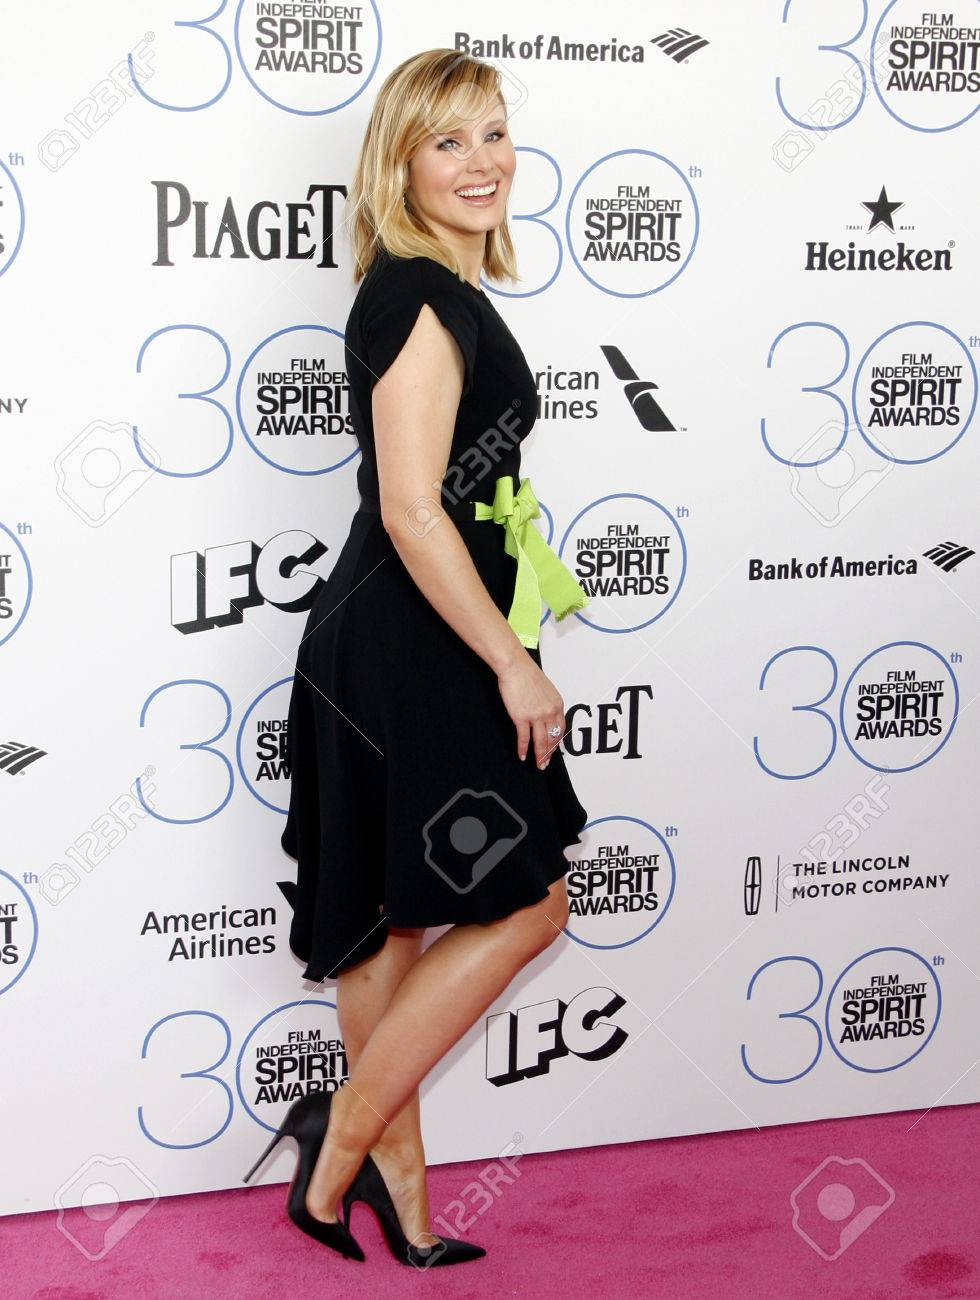 Kristen Bell At The 2015 Film Independent Spirit Awards Held.. Stock Photo,  Picture And Royalty Free Image. Image 53568590.